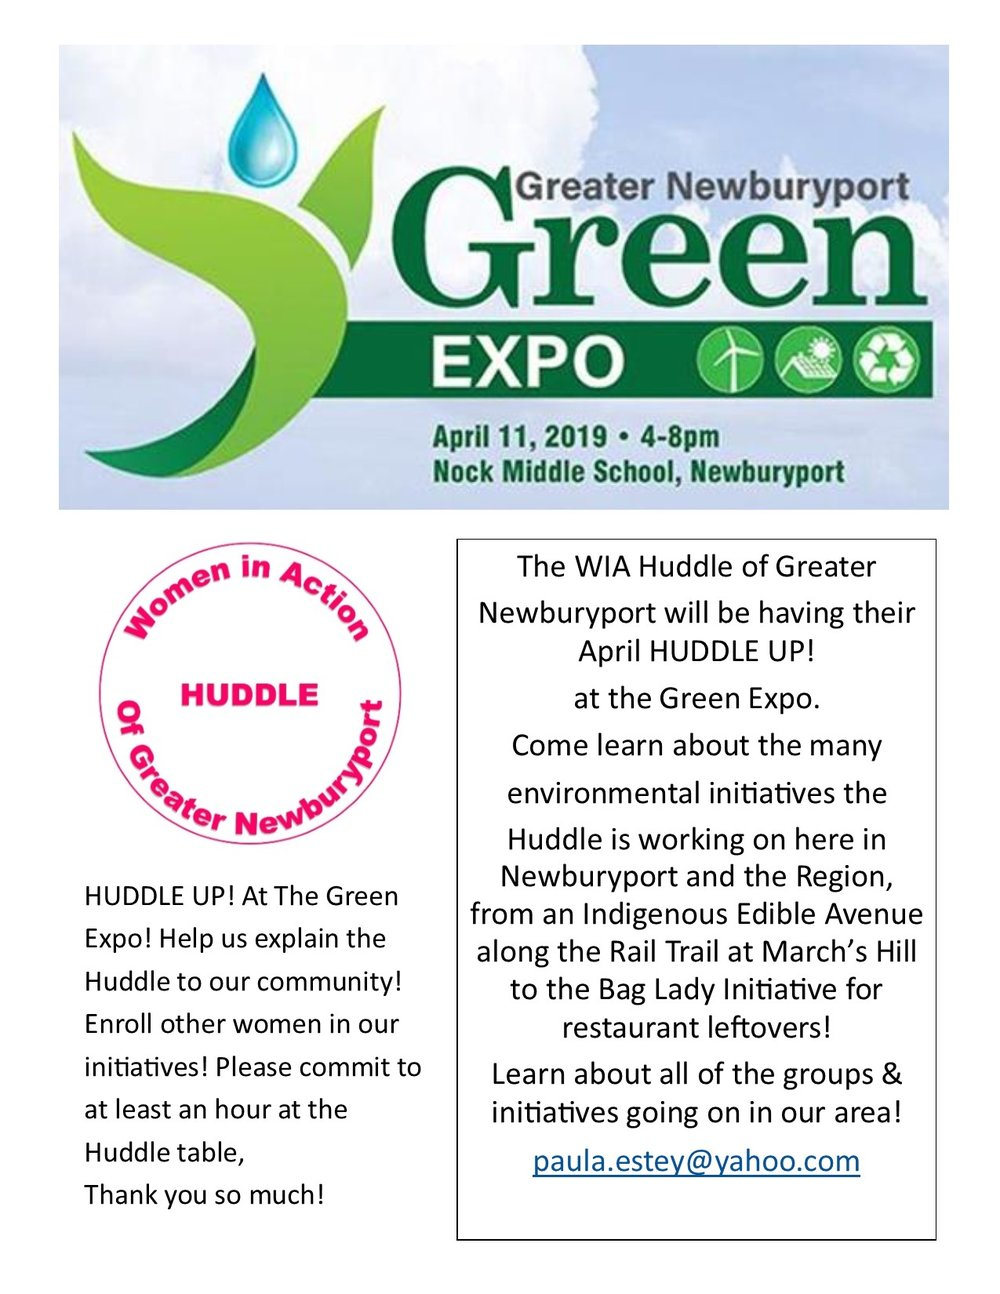 Green Expo Huddle April 2019   flyer.jpg